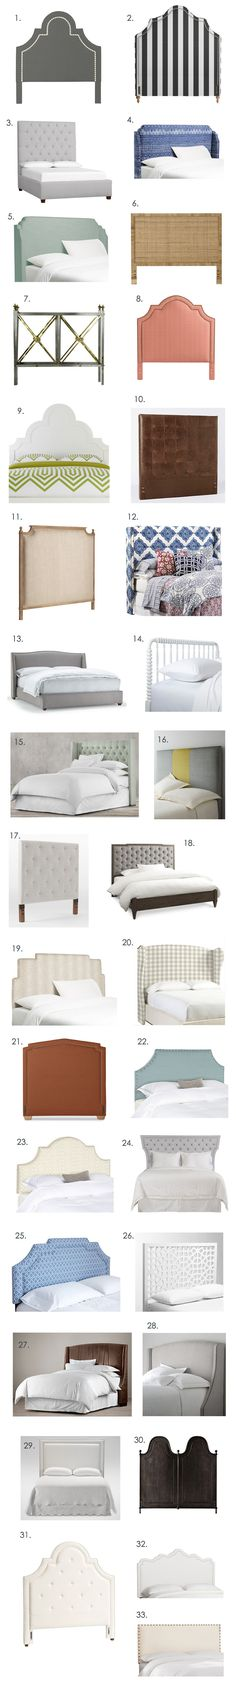 Big Headboard Roundup!